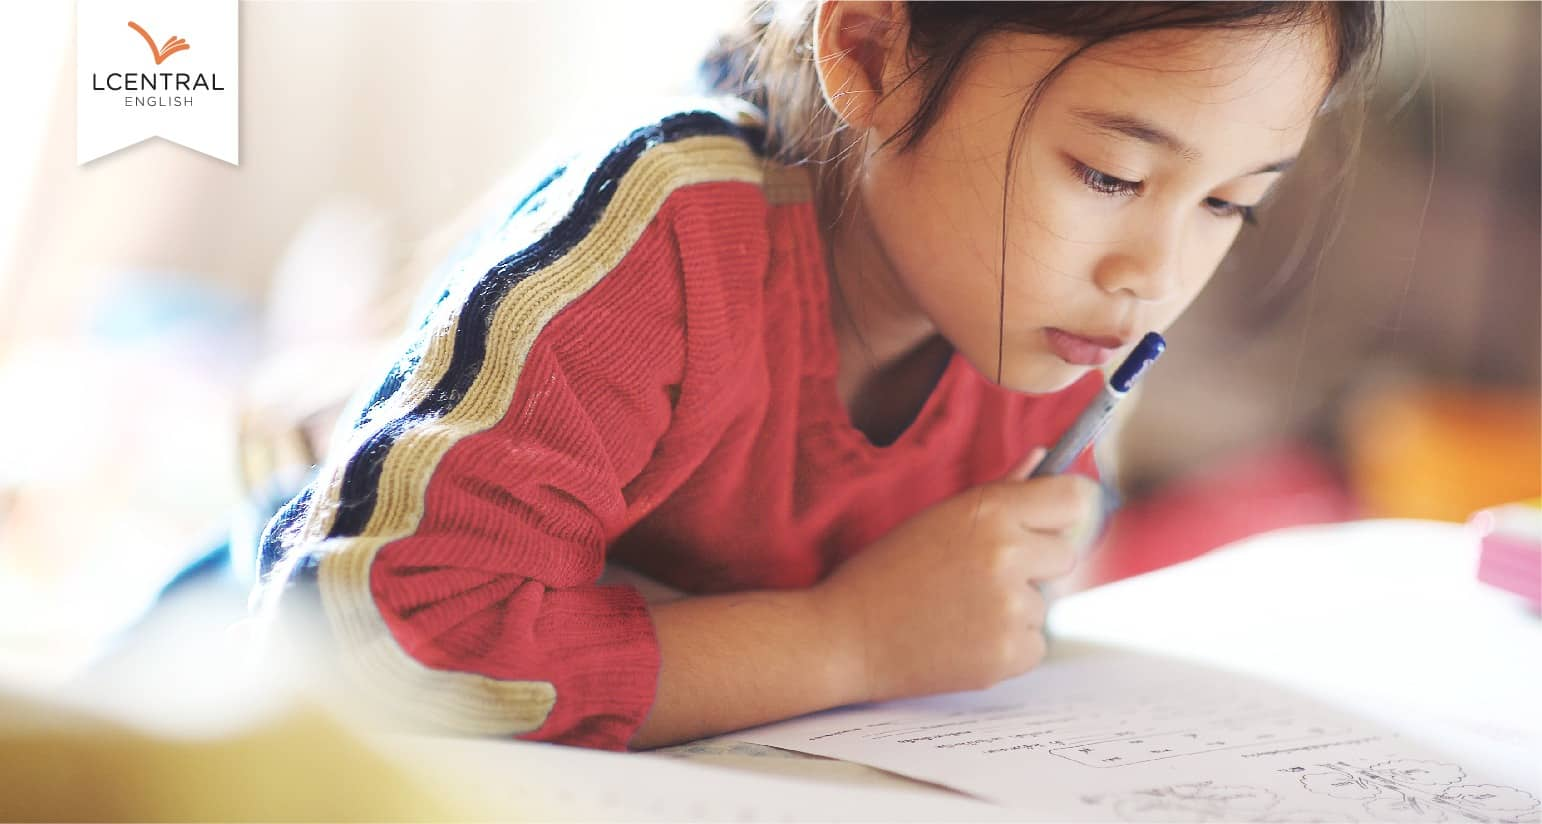 LCentral English Enrichment Tuition Singapore Developing Pre-reading Skills Motivation to read